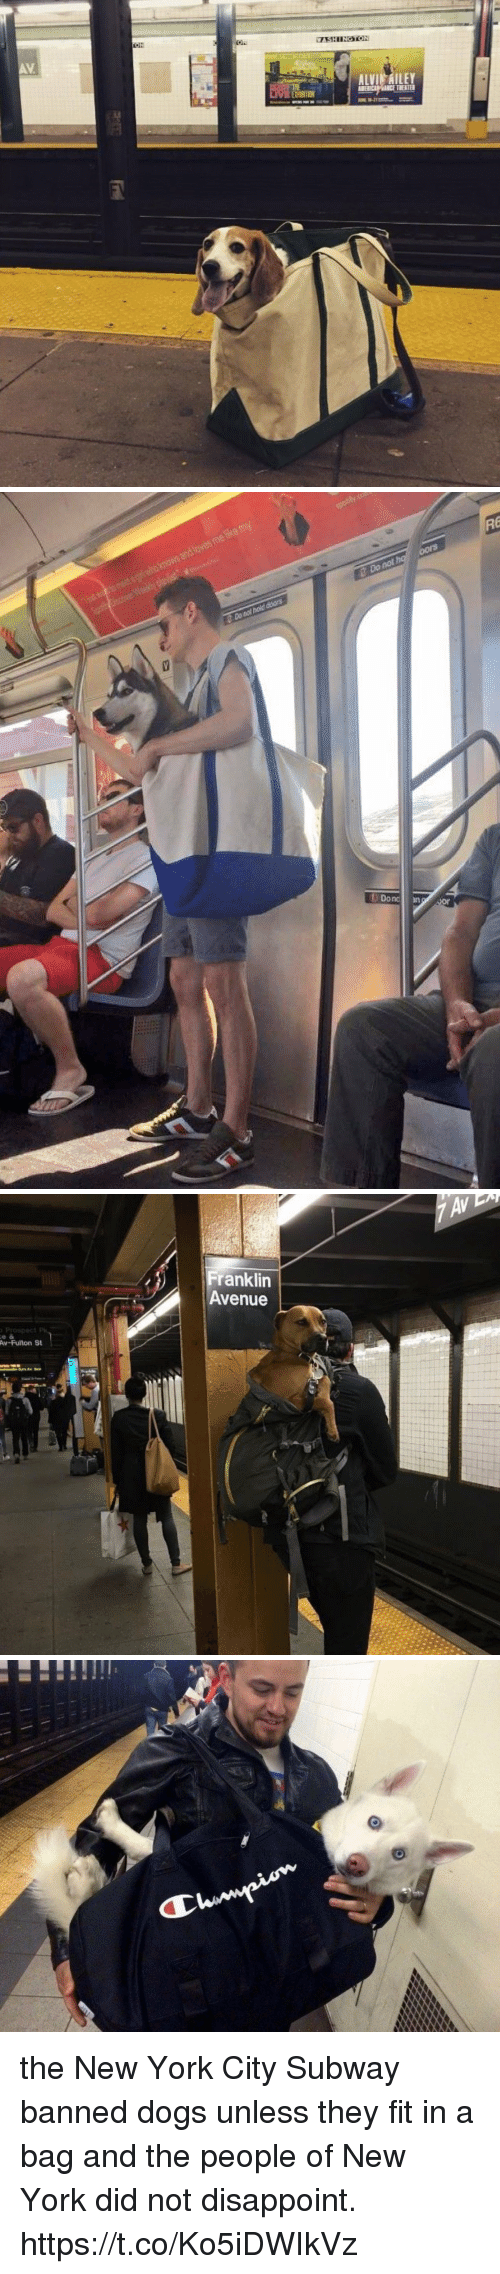 Best Memes About Subways Subways Memes - Nyc subway bans dogs unless fit bag new yorkers reacted